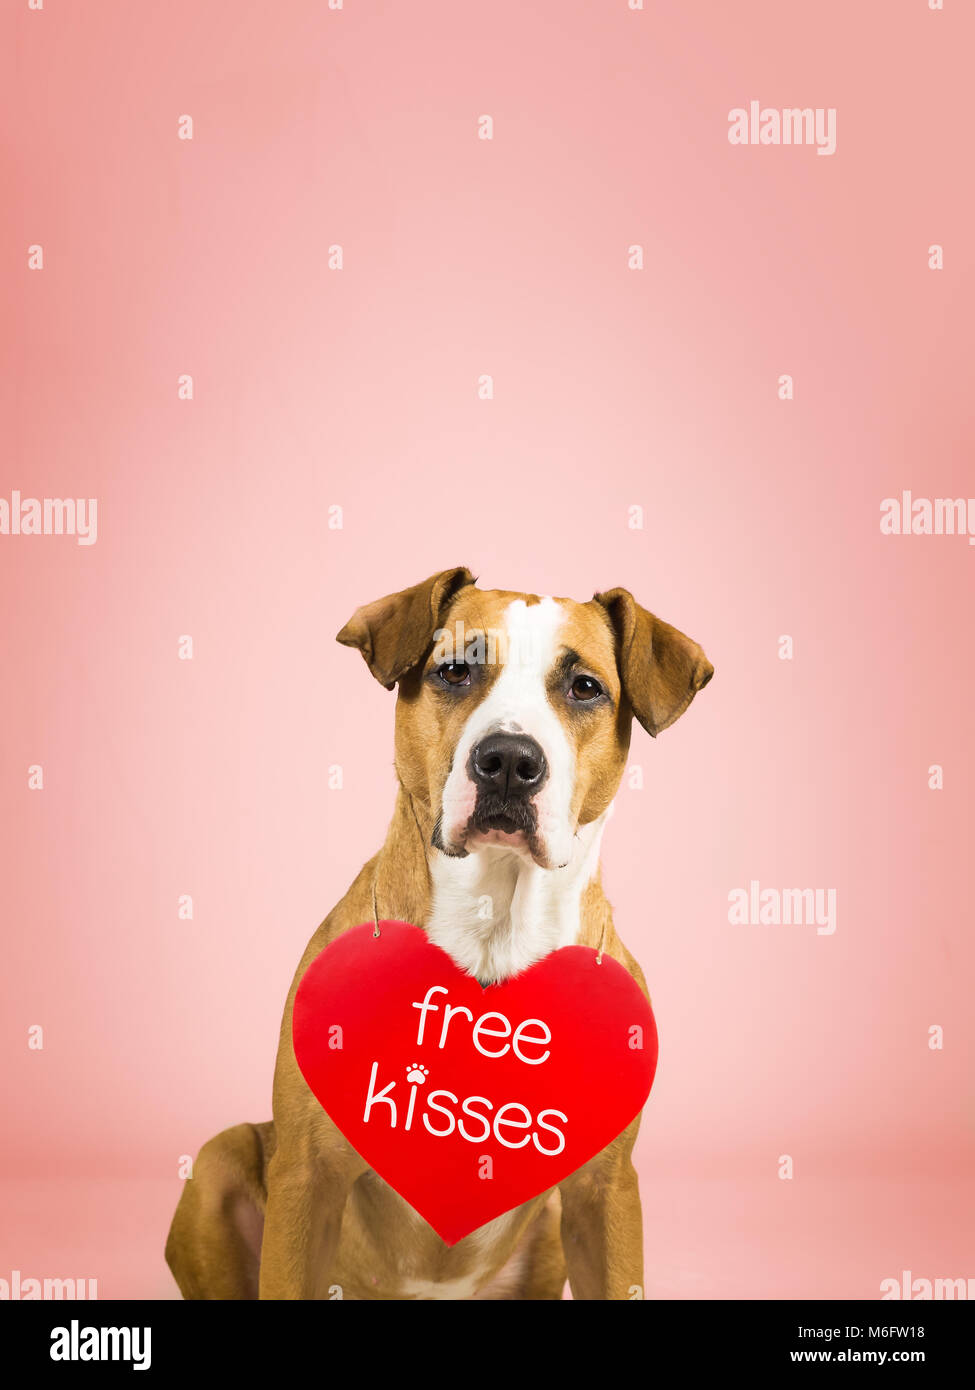 Lovely young pitbull terrier dog with 'free kisses' paper heart. - Stock Image